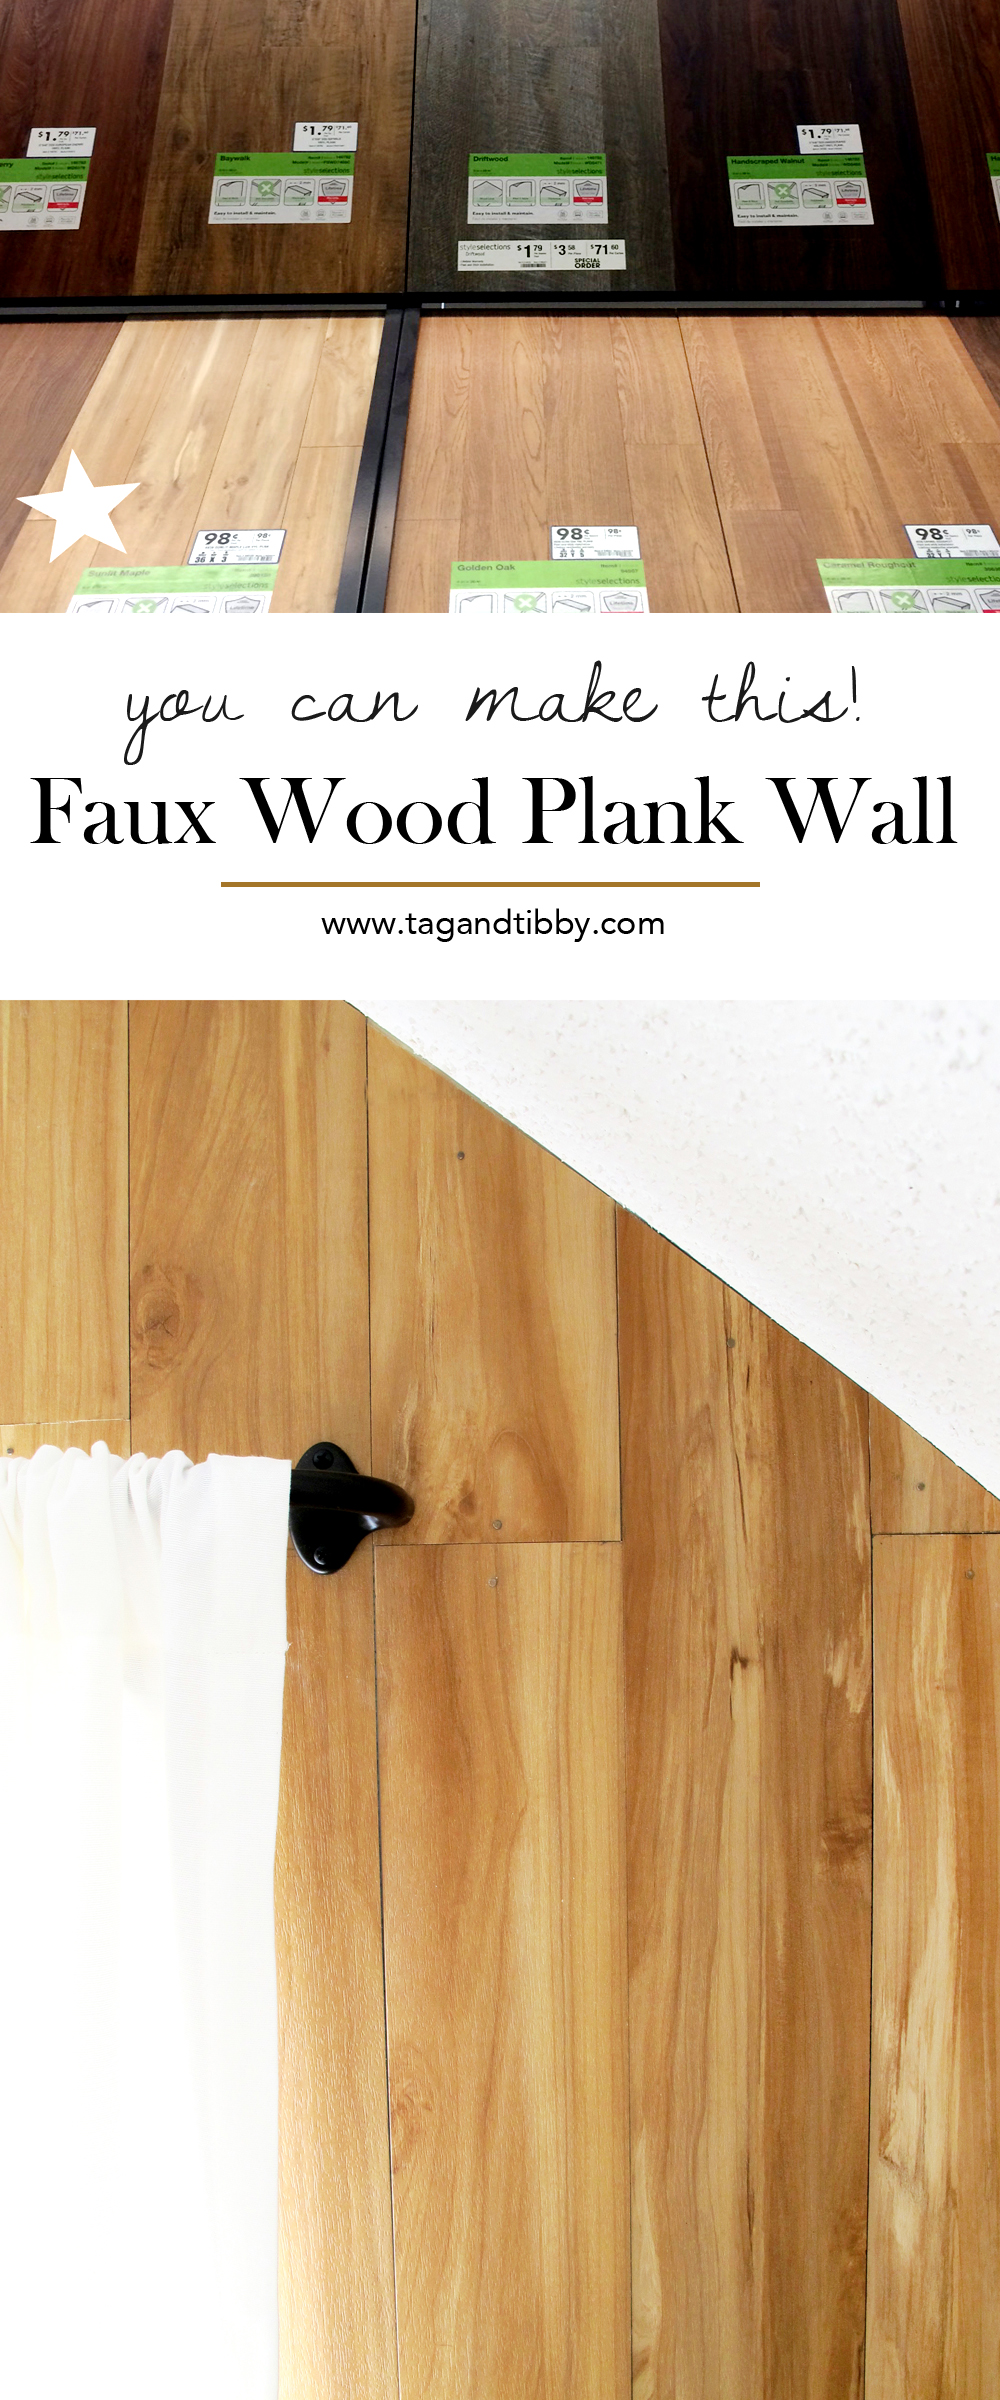 DIY Wood Plank Wall made with faux wood flooring #DIY #HomeImprovement